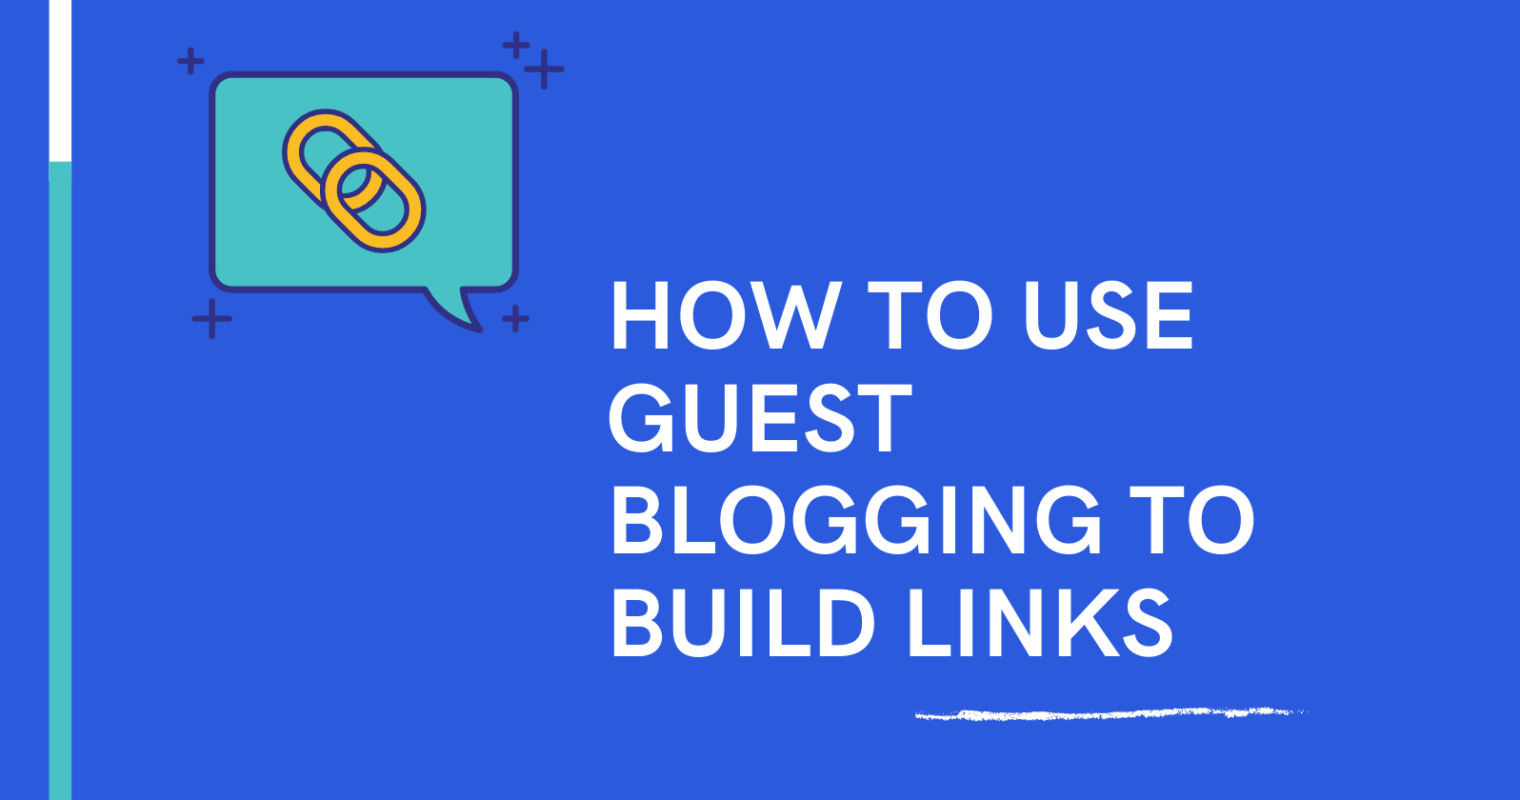 How to Use Guest Blogging to Build Relationships